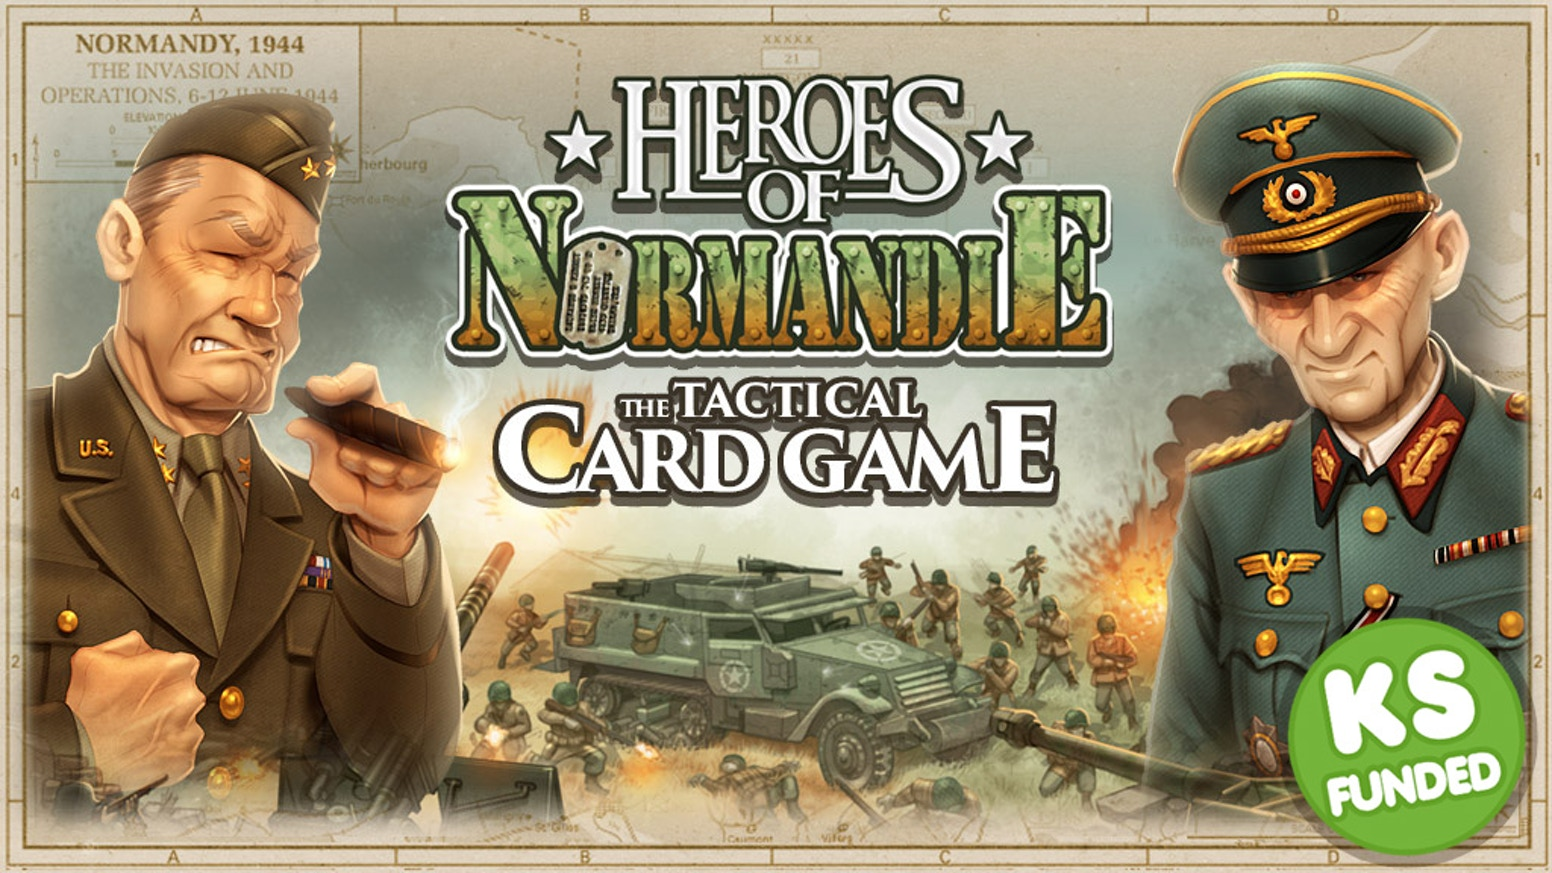 "Set in the ""Heroes of Normandie"" universe, this tactical card game sends you to the Normandy battlefields to lead Operation Overlord."